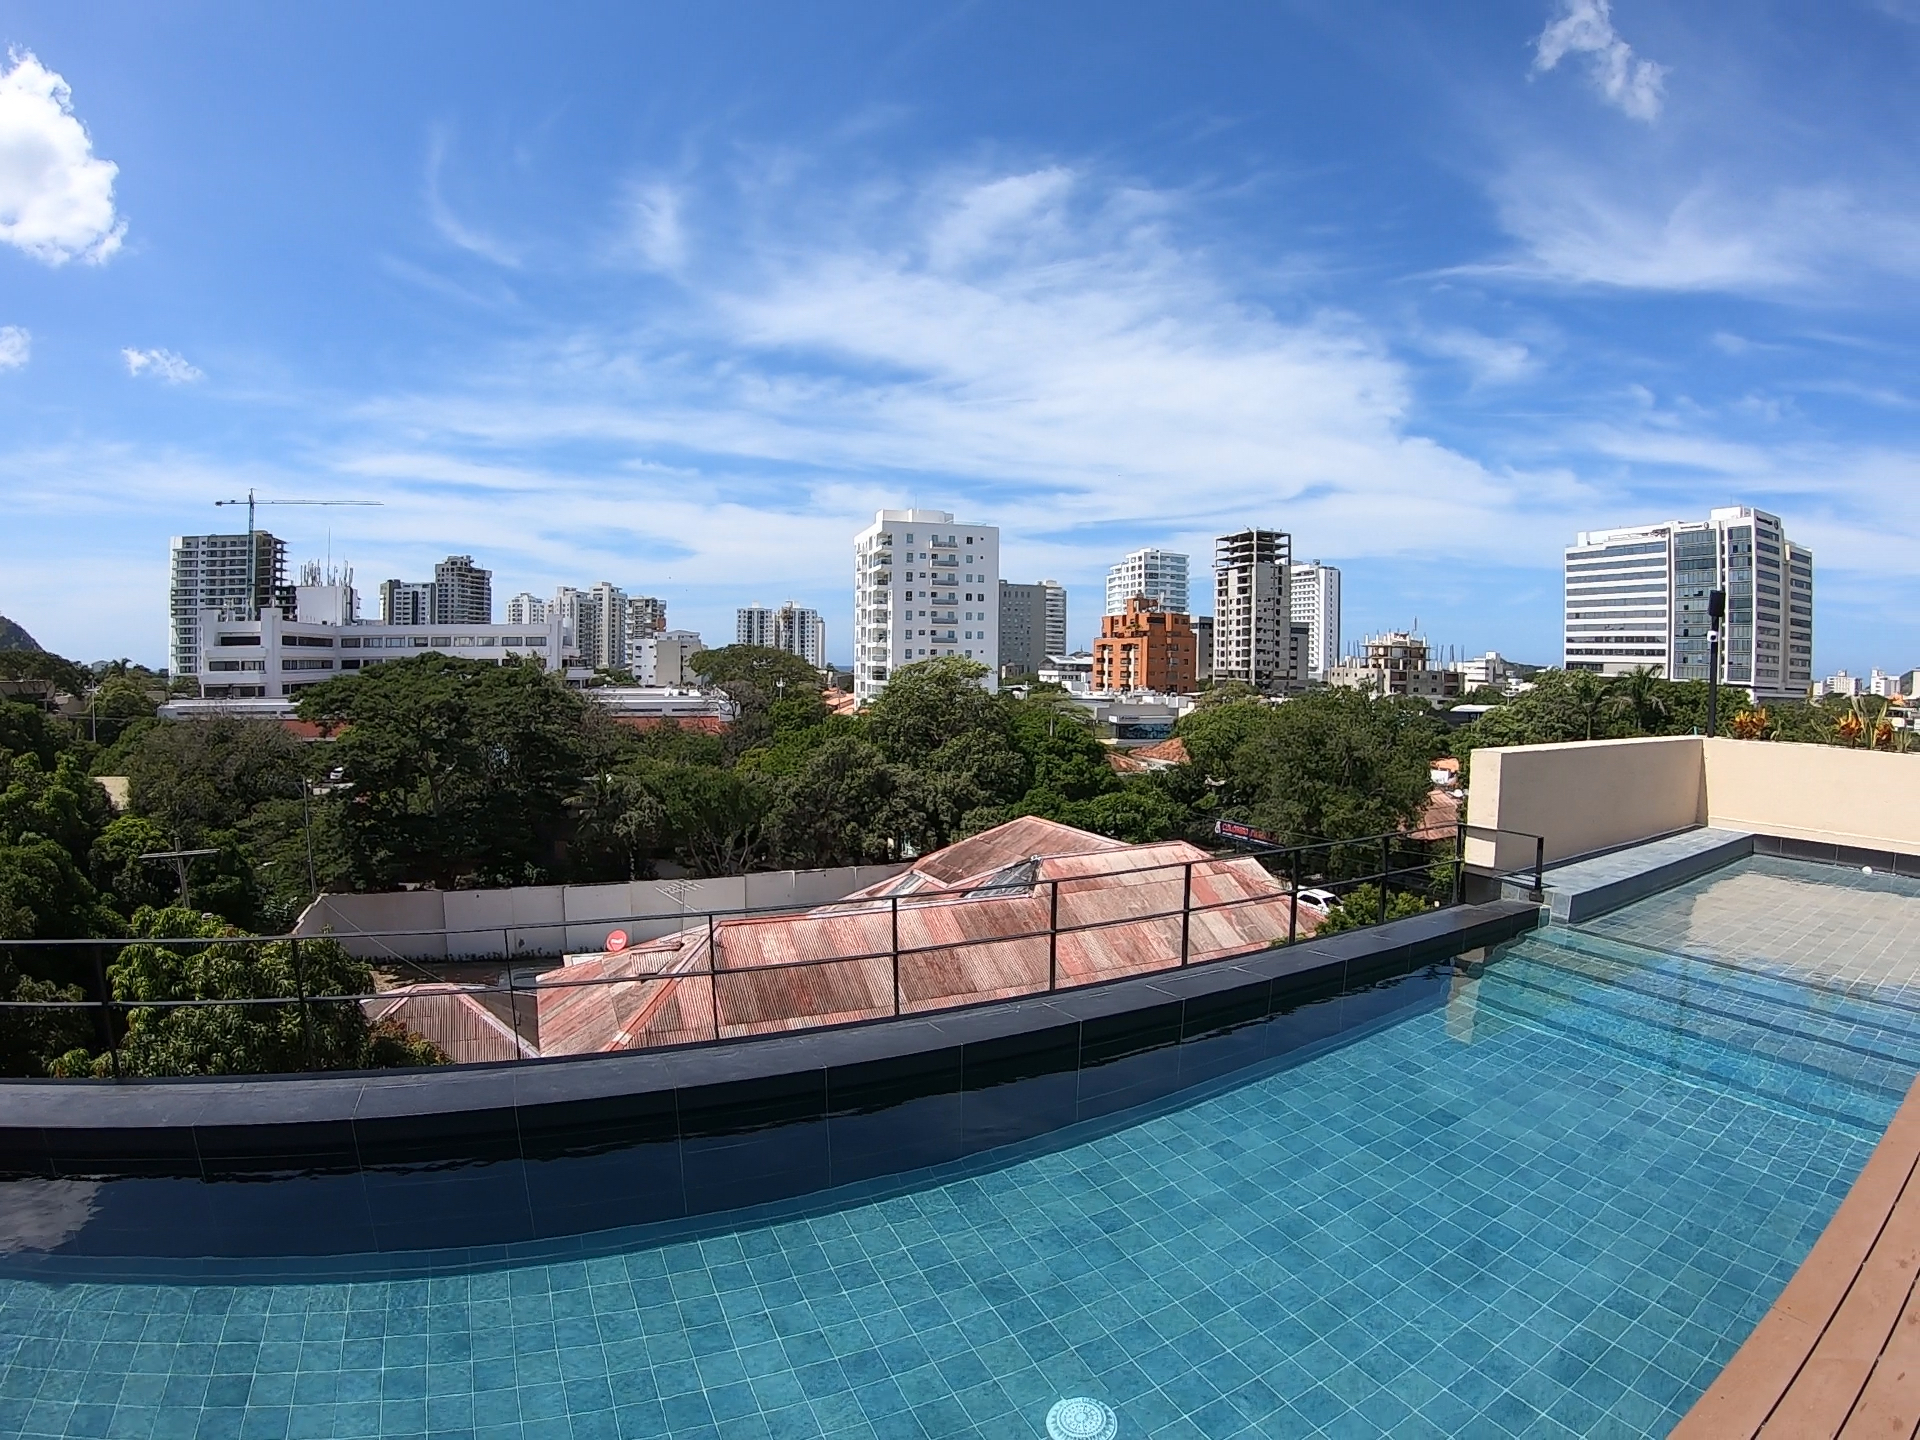 A rooftop pool with a view of the tall buildings in the city of Santa Marta, Colombia.